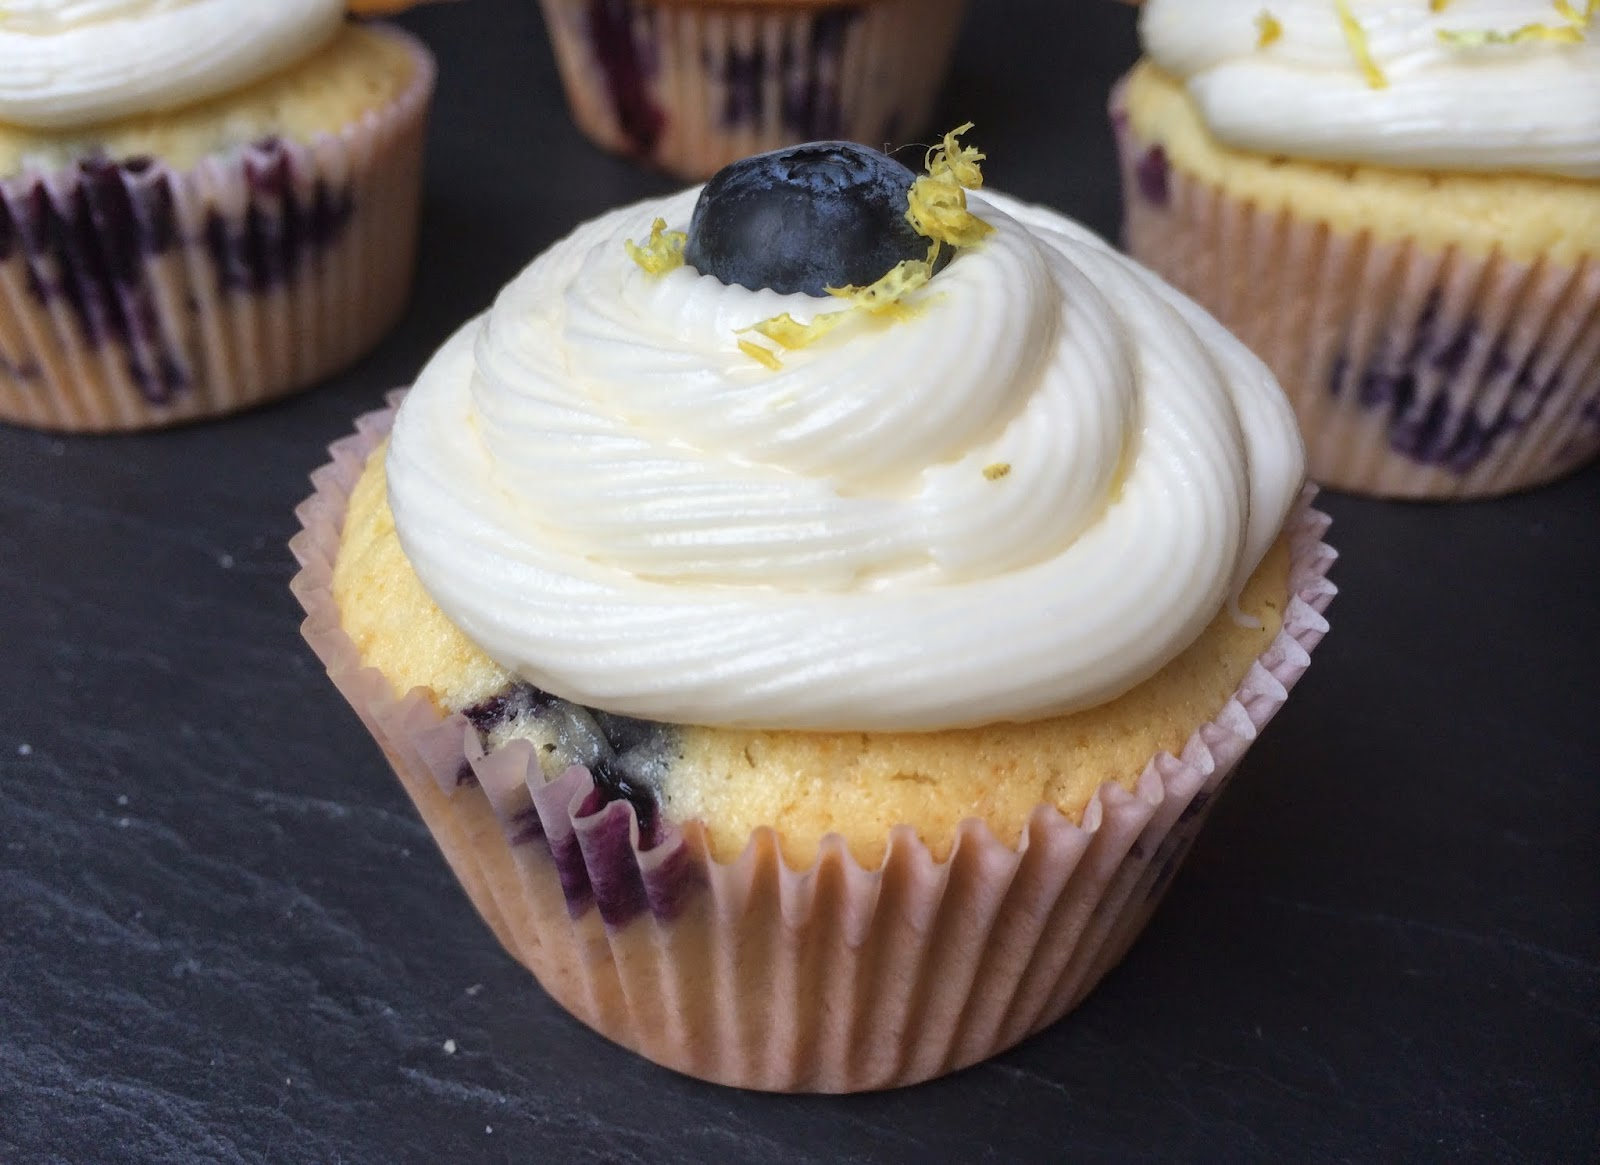 Blueberry Cupcakes with Lemon Cream Cheese Frosting